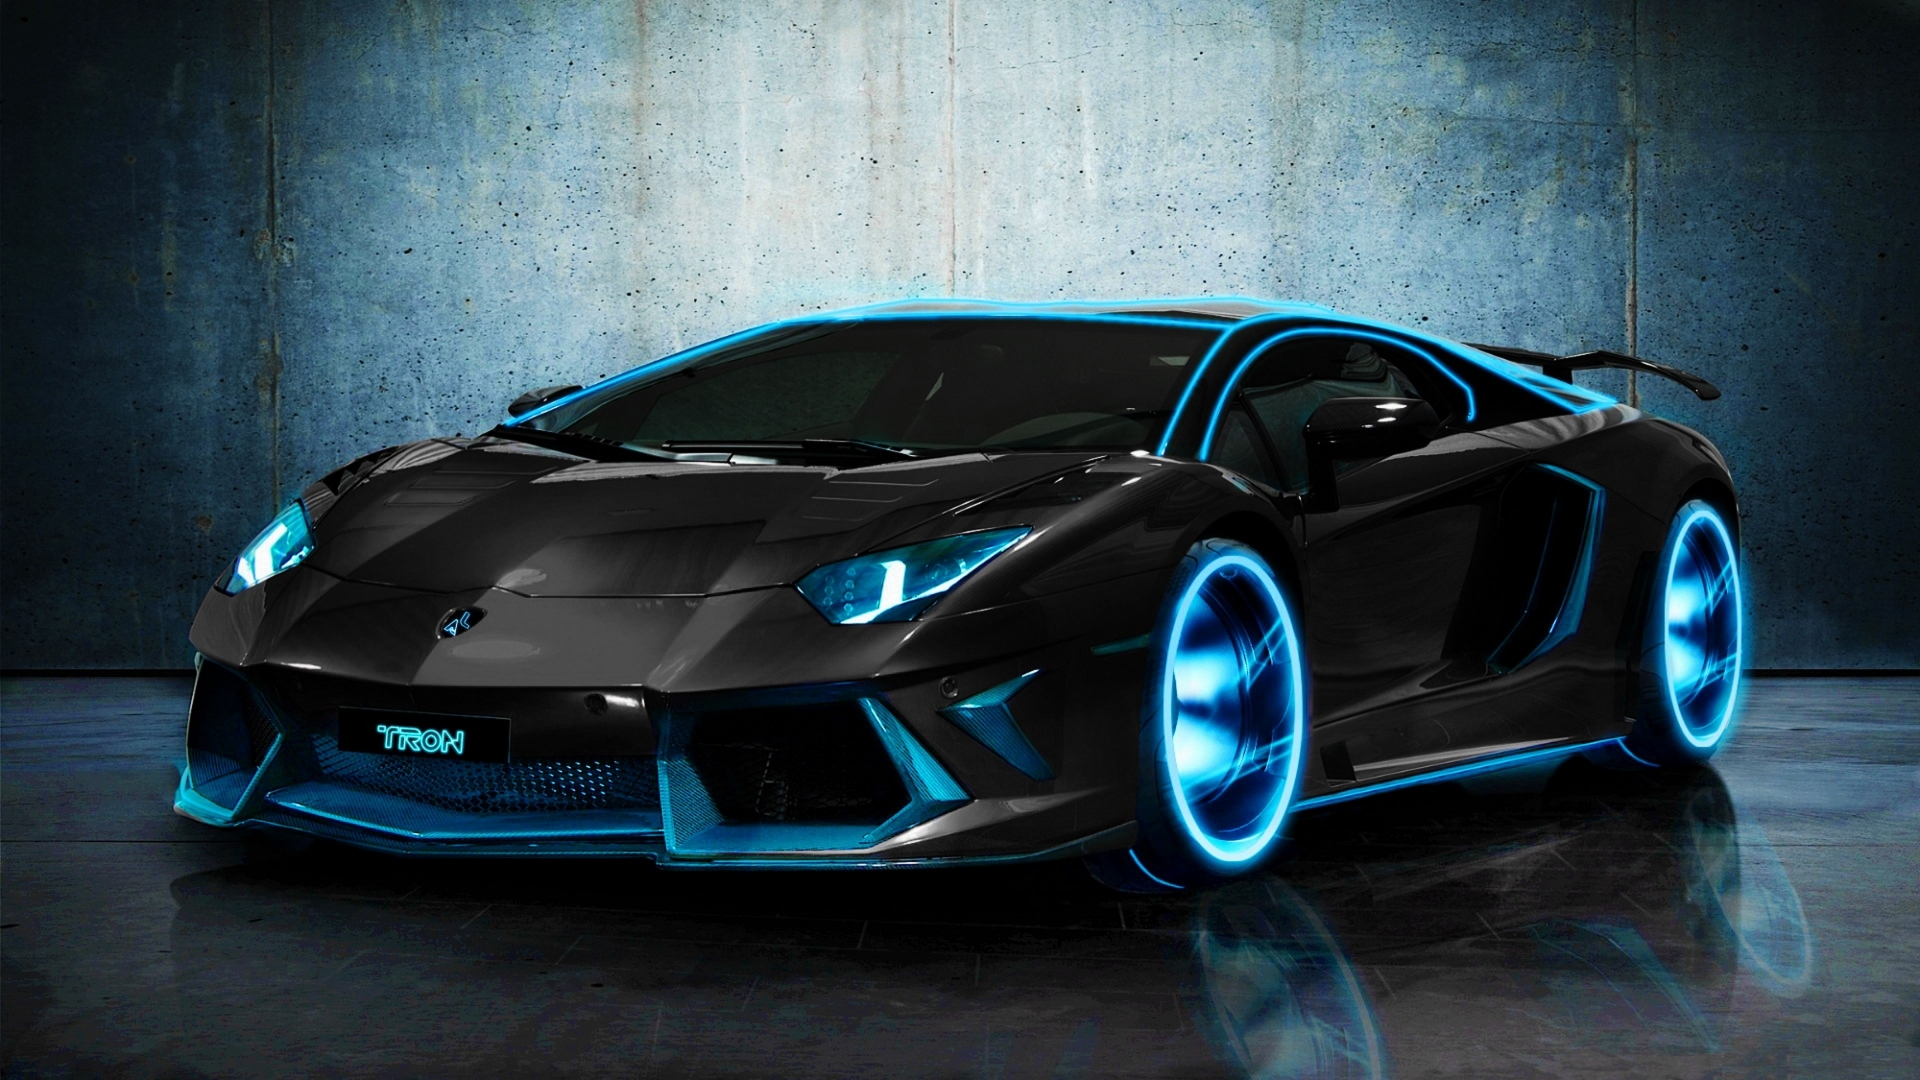 Tron Style Lamborghini Aventador Wallpaper HD Car Wallpapers 1920x1080